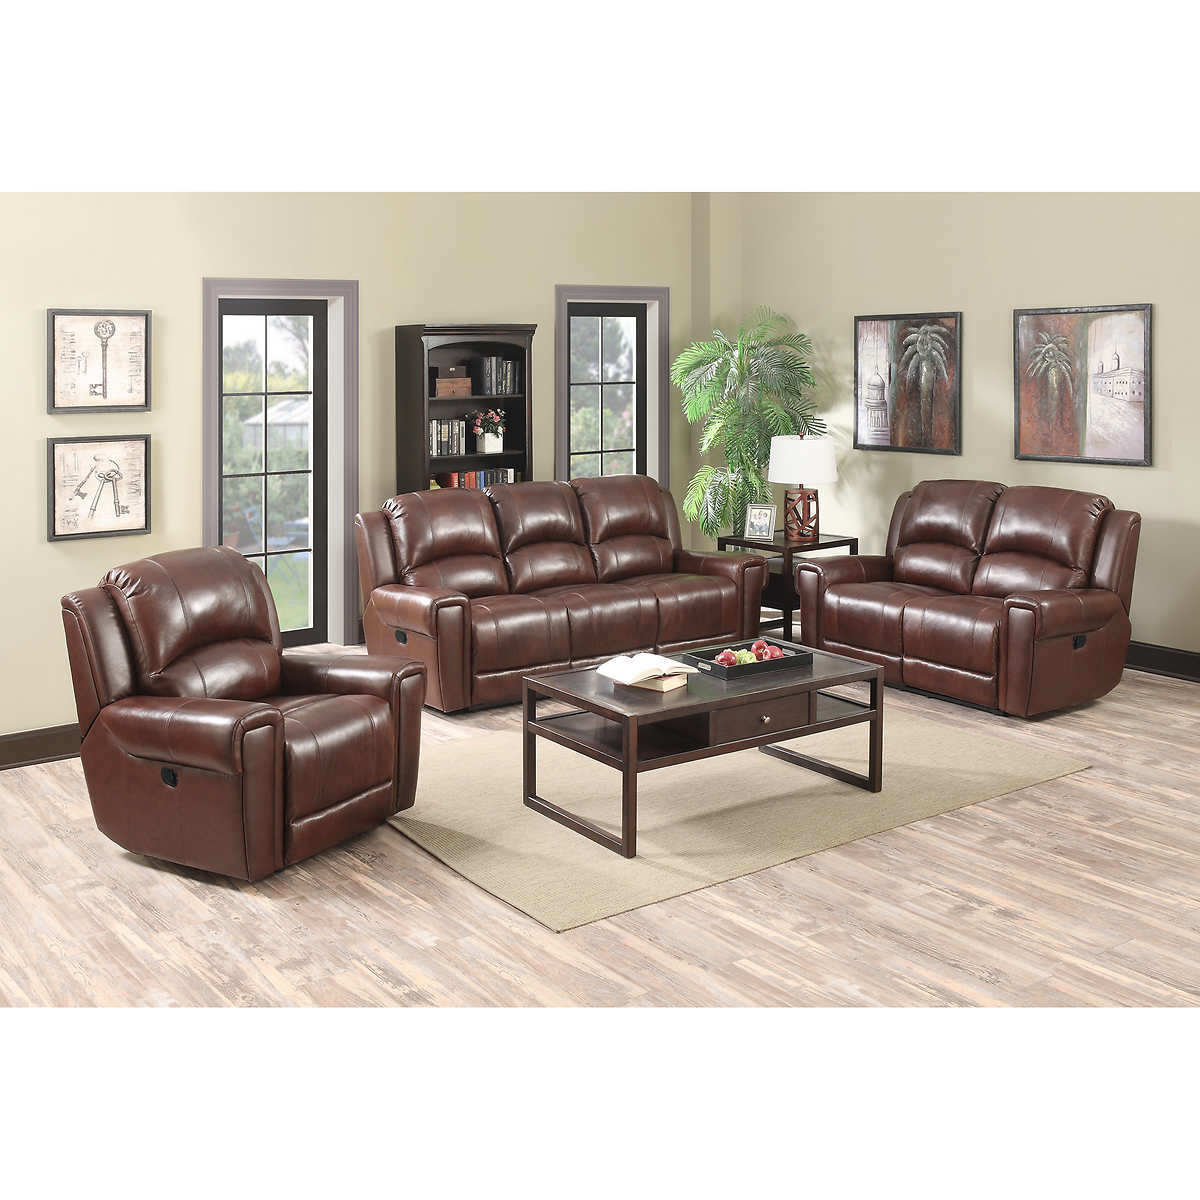 Reclining Living Room Set Home Design Ideas Within